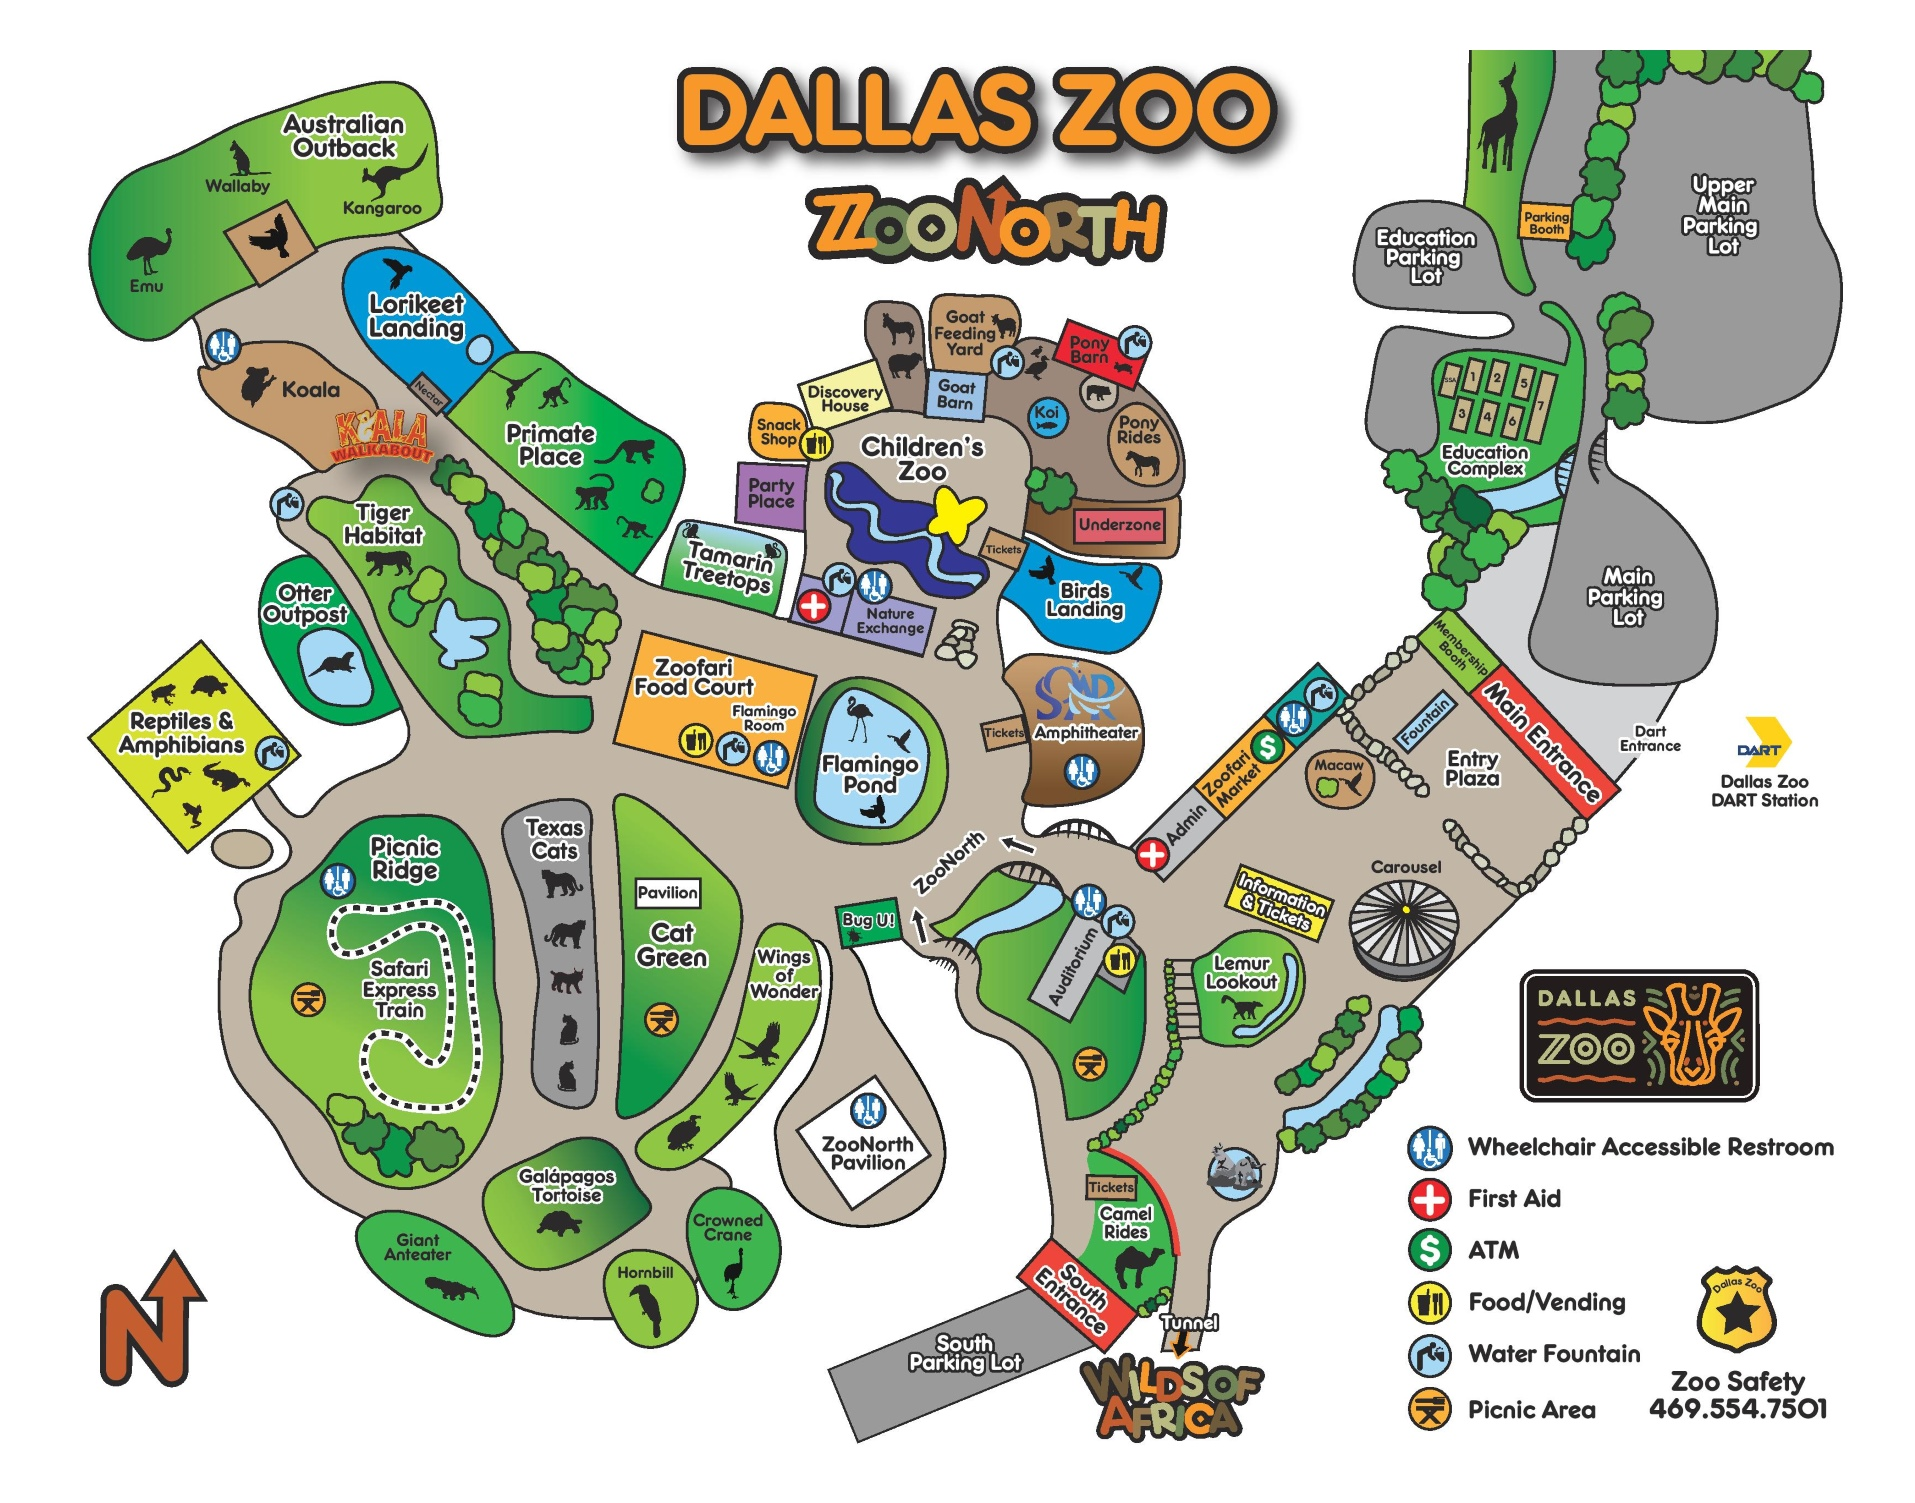 denver colorado map usa with Dallas Zoo Map on In Flea Markets furthermore Indianapolis Location On The Us Map besides Colorado together with Tourism G33388 Denver Colorado Vacations in addition K5sk Aspen Co Boulder Colorado.